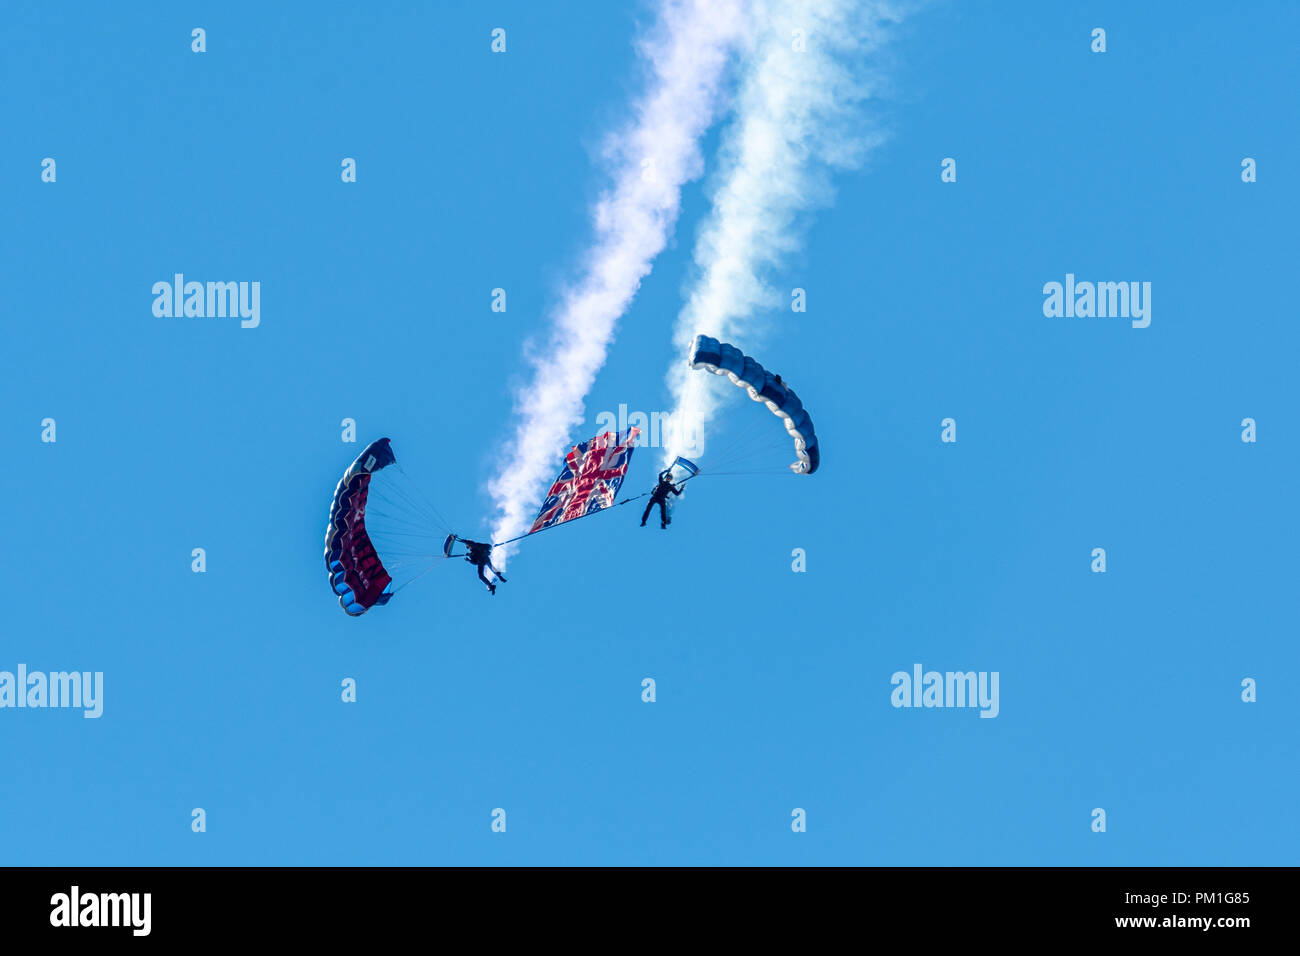 SOUTHPORT, UK JULY 8 2018:  A photograph documenting the British Army Flying Tigers Freefall Parachute Display Team at Southport Airshow - Stock Image